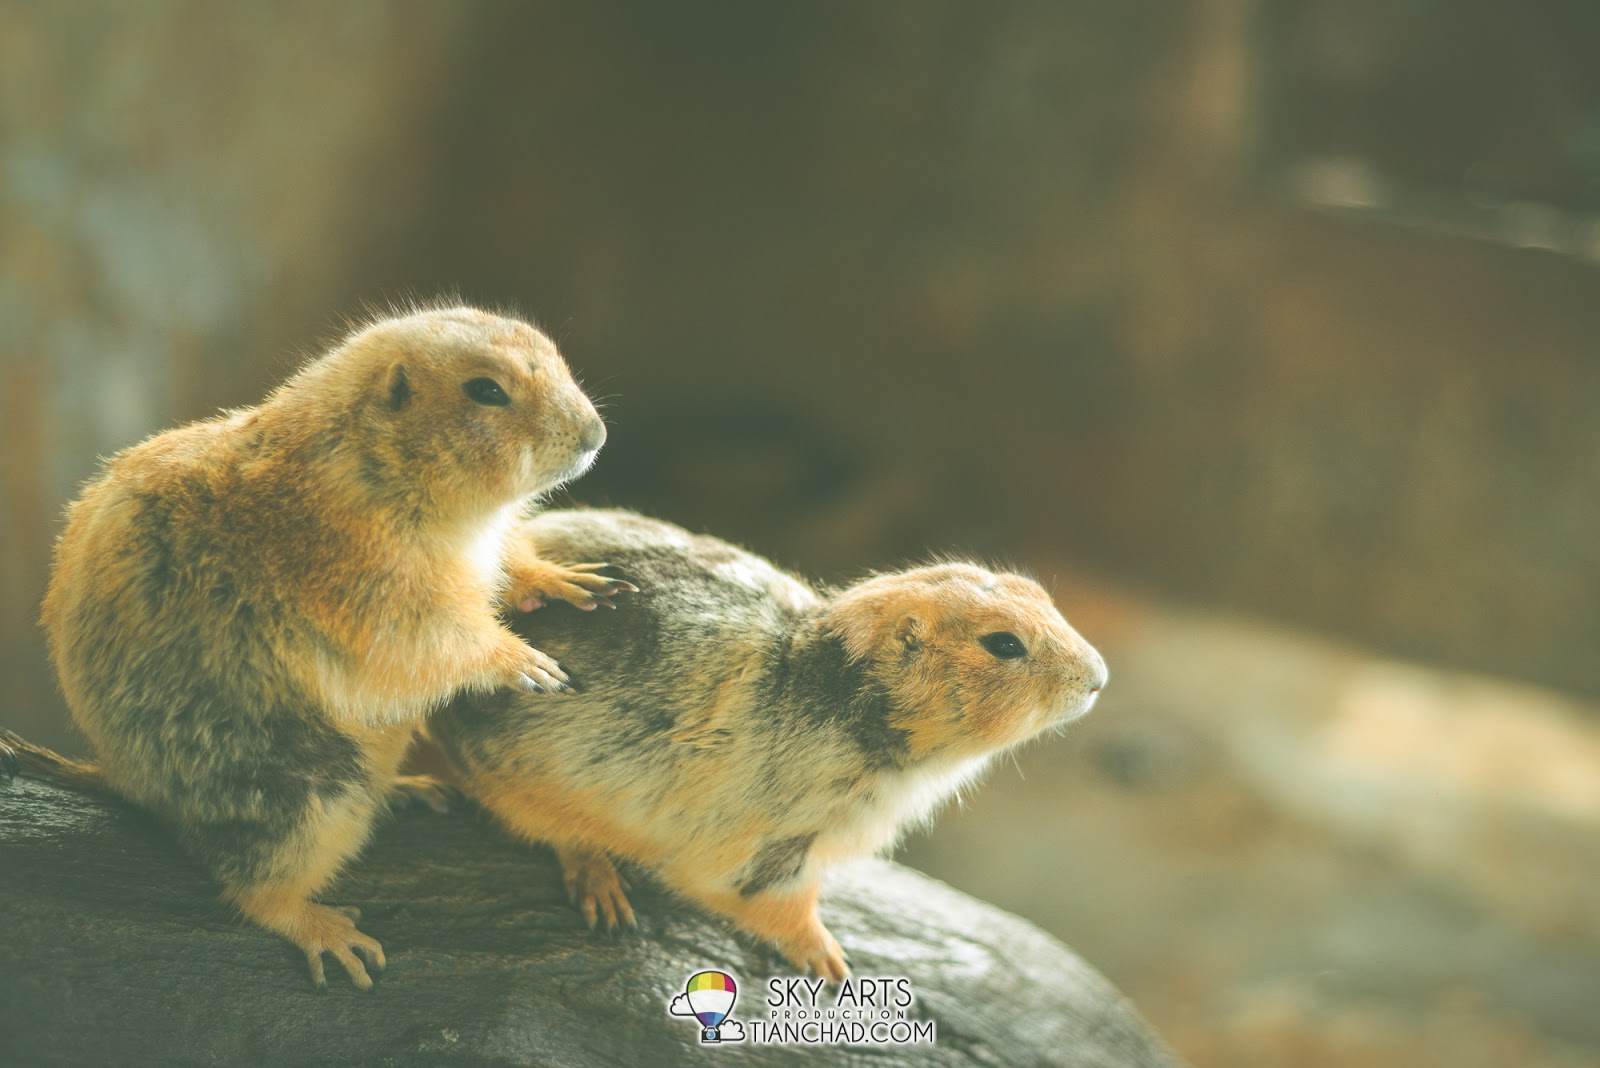 Prairie dogs looks cute and funny with its short hands